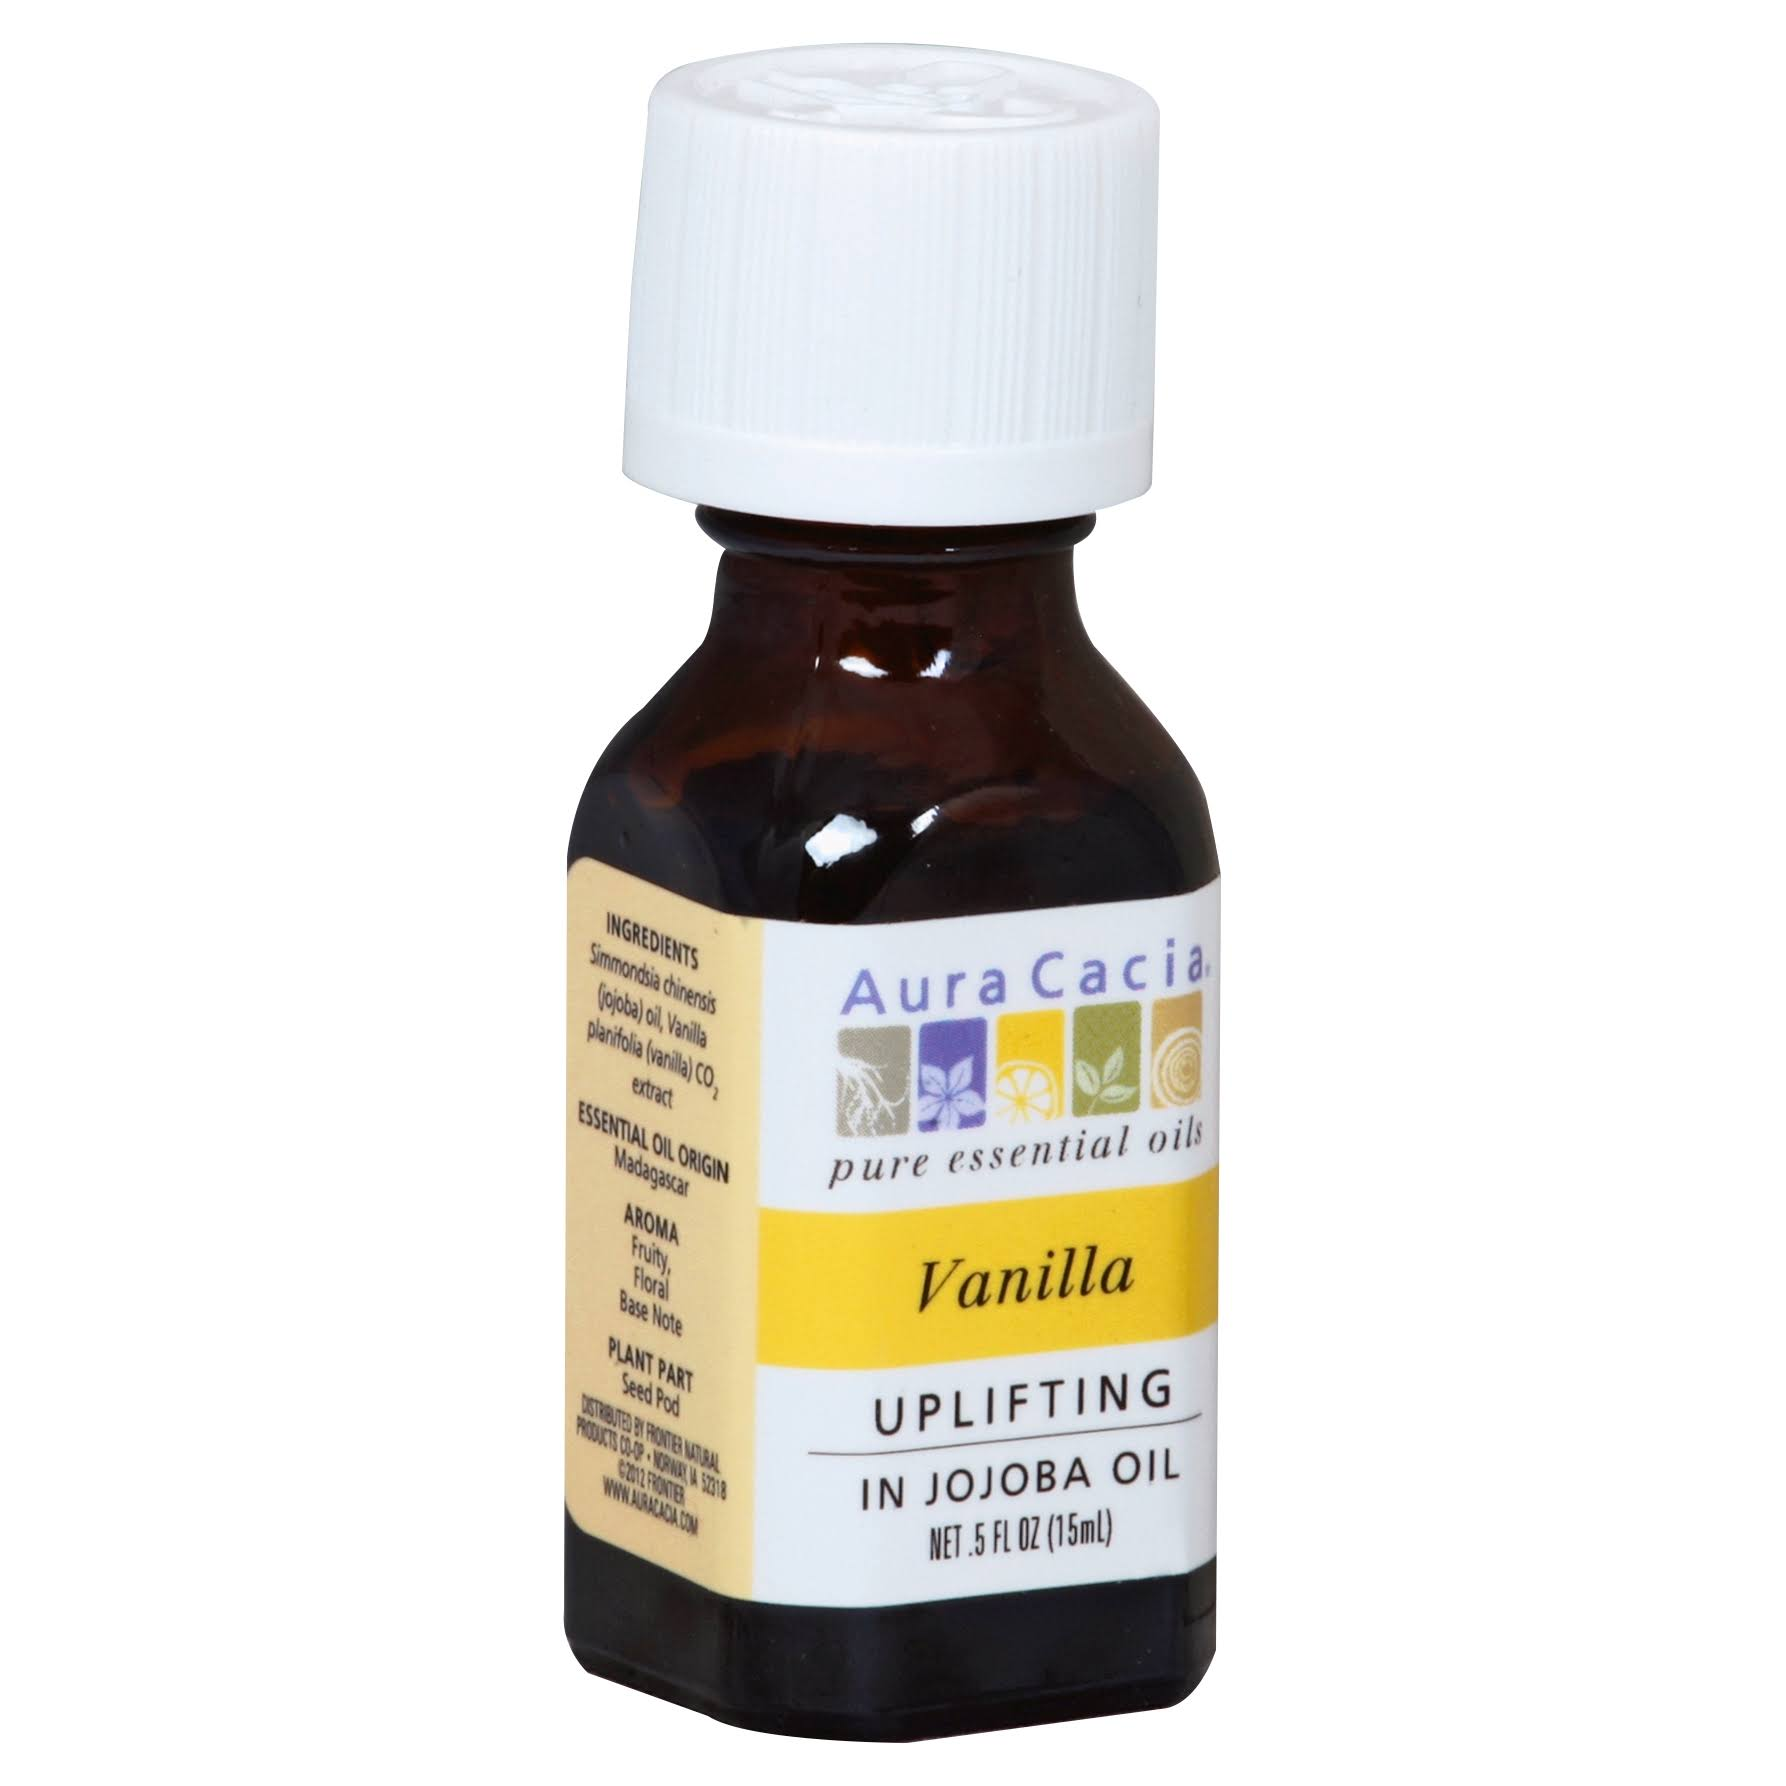 Aura Cacia Pure Essential Oil - Vanilla, 15ml